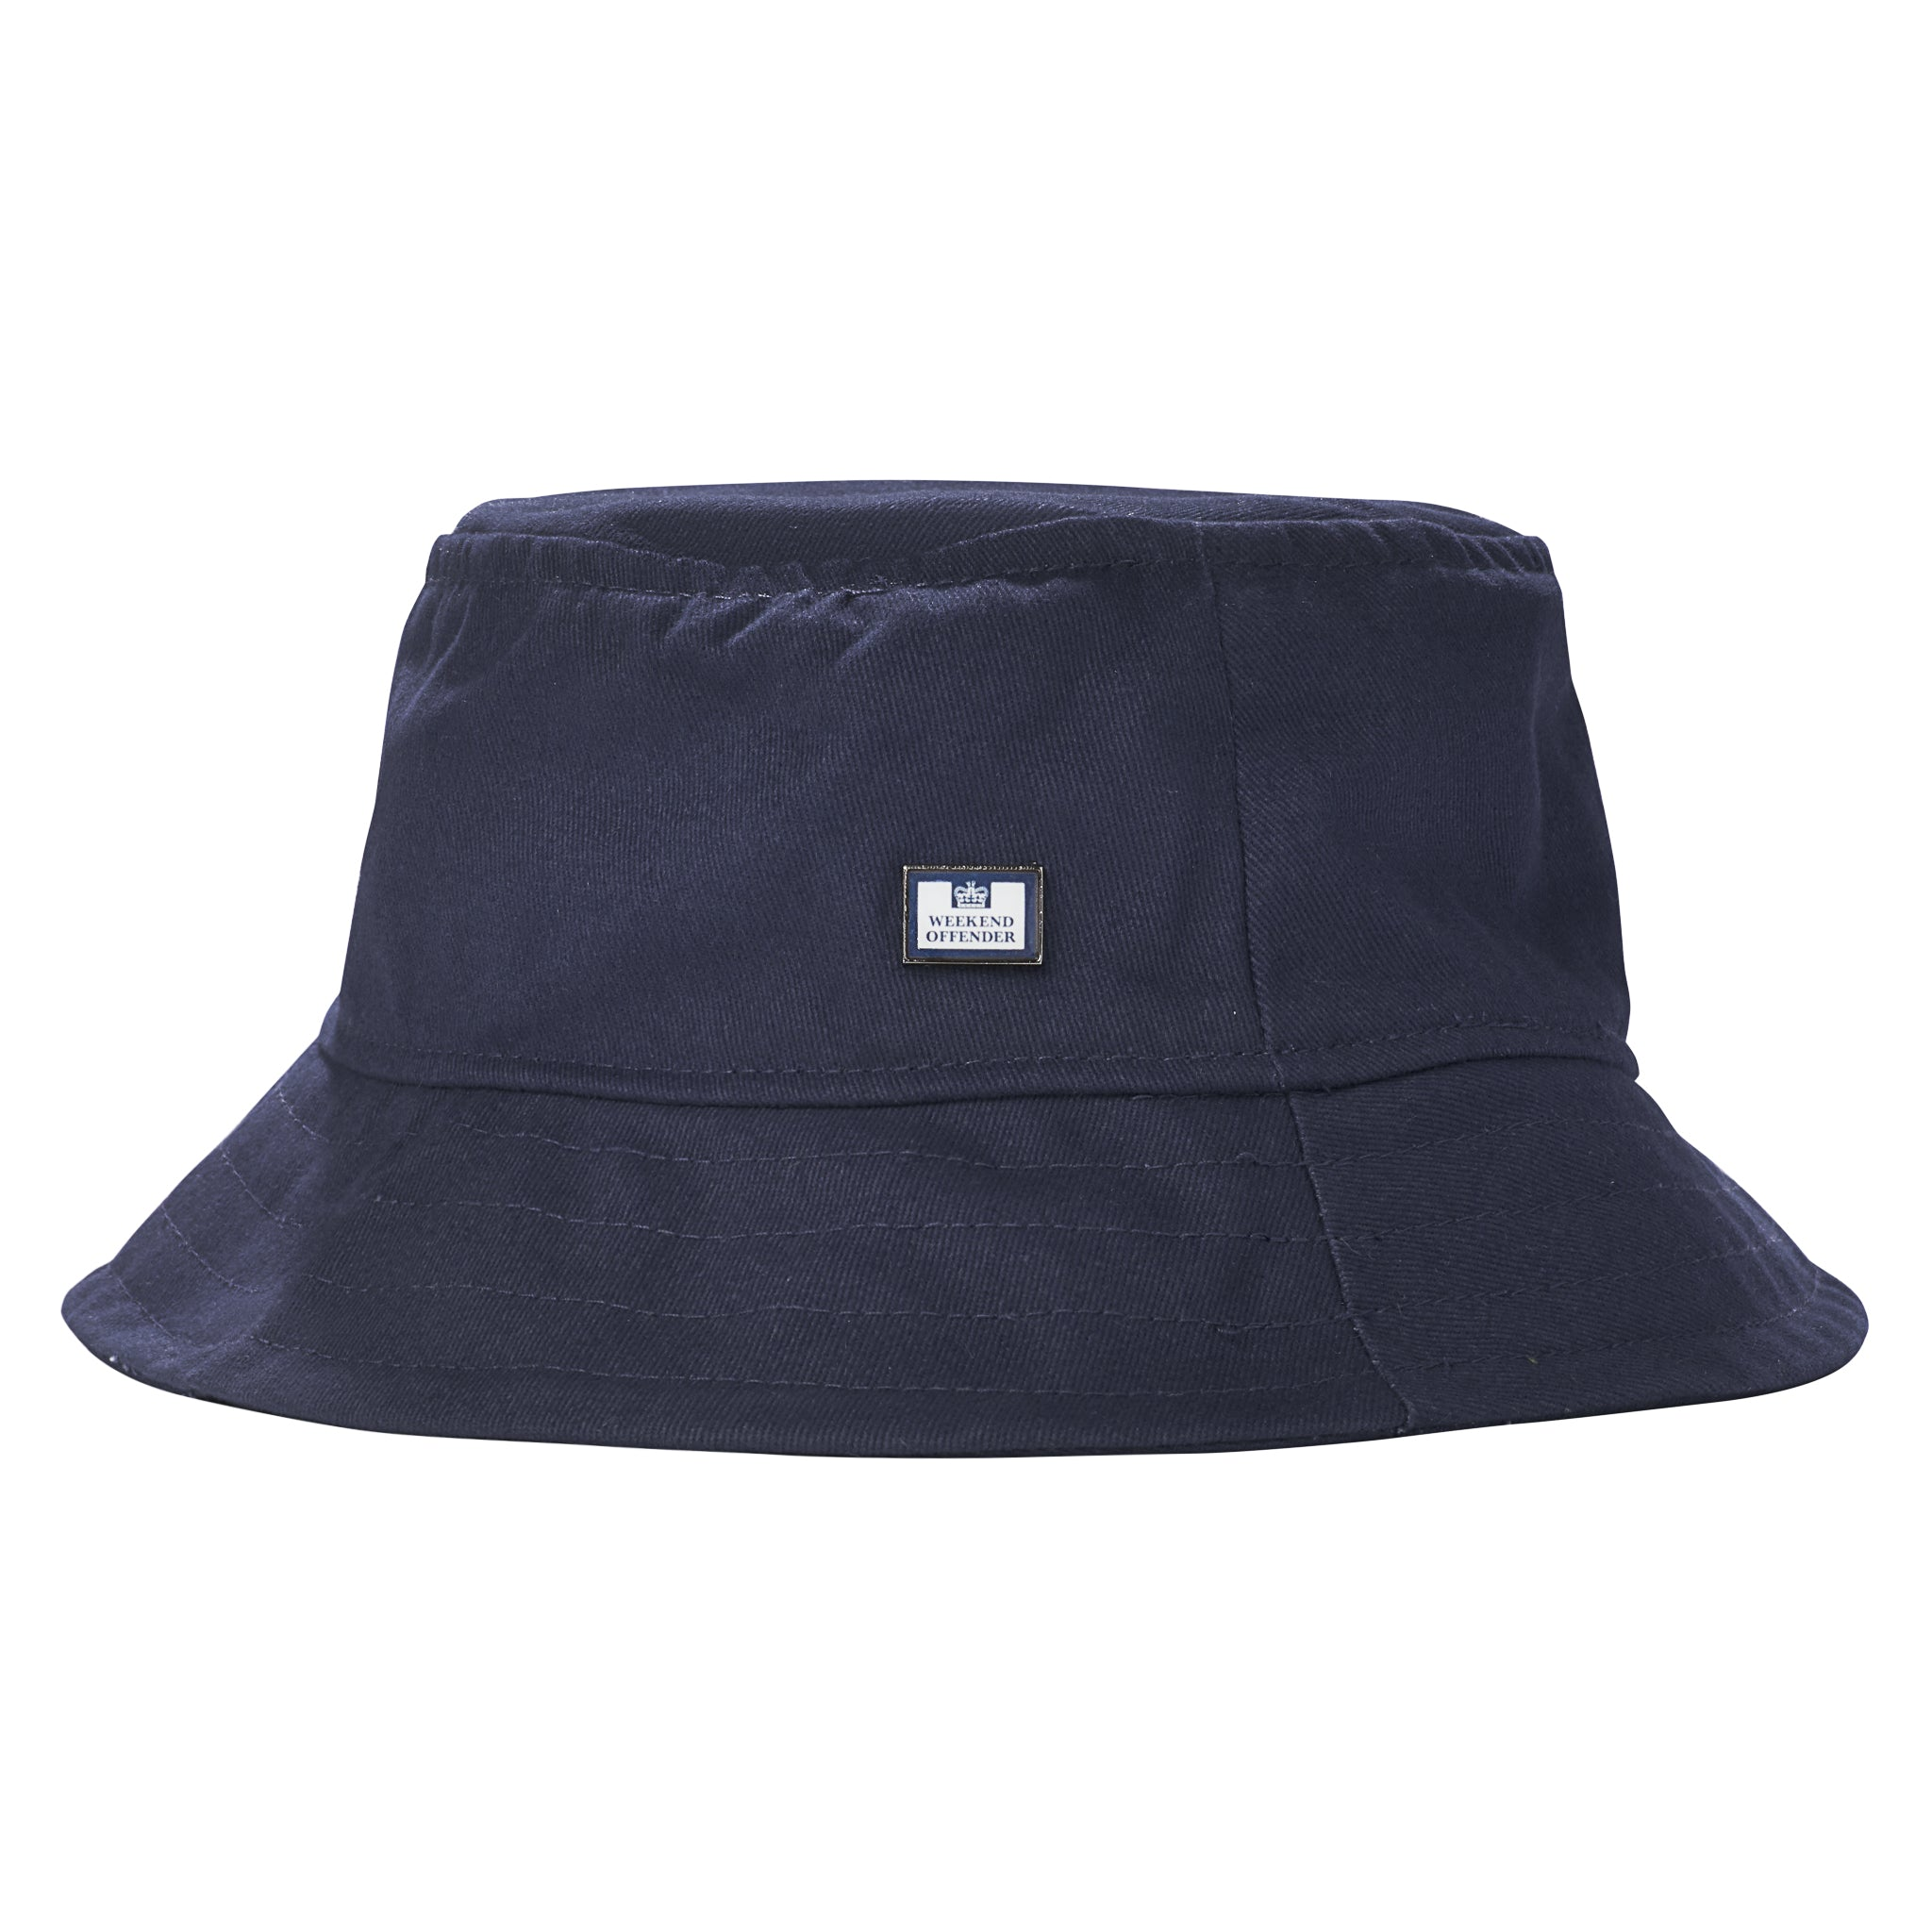 41afd6dfb25 King Bucket Hat Navy – Weekend Offender